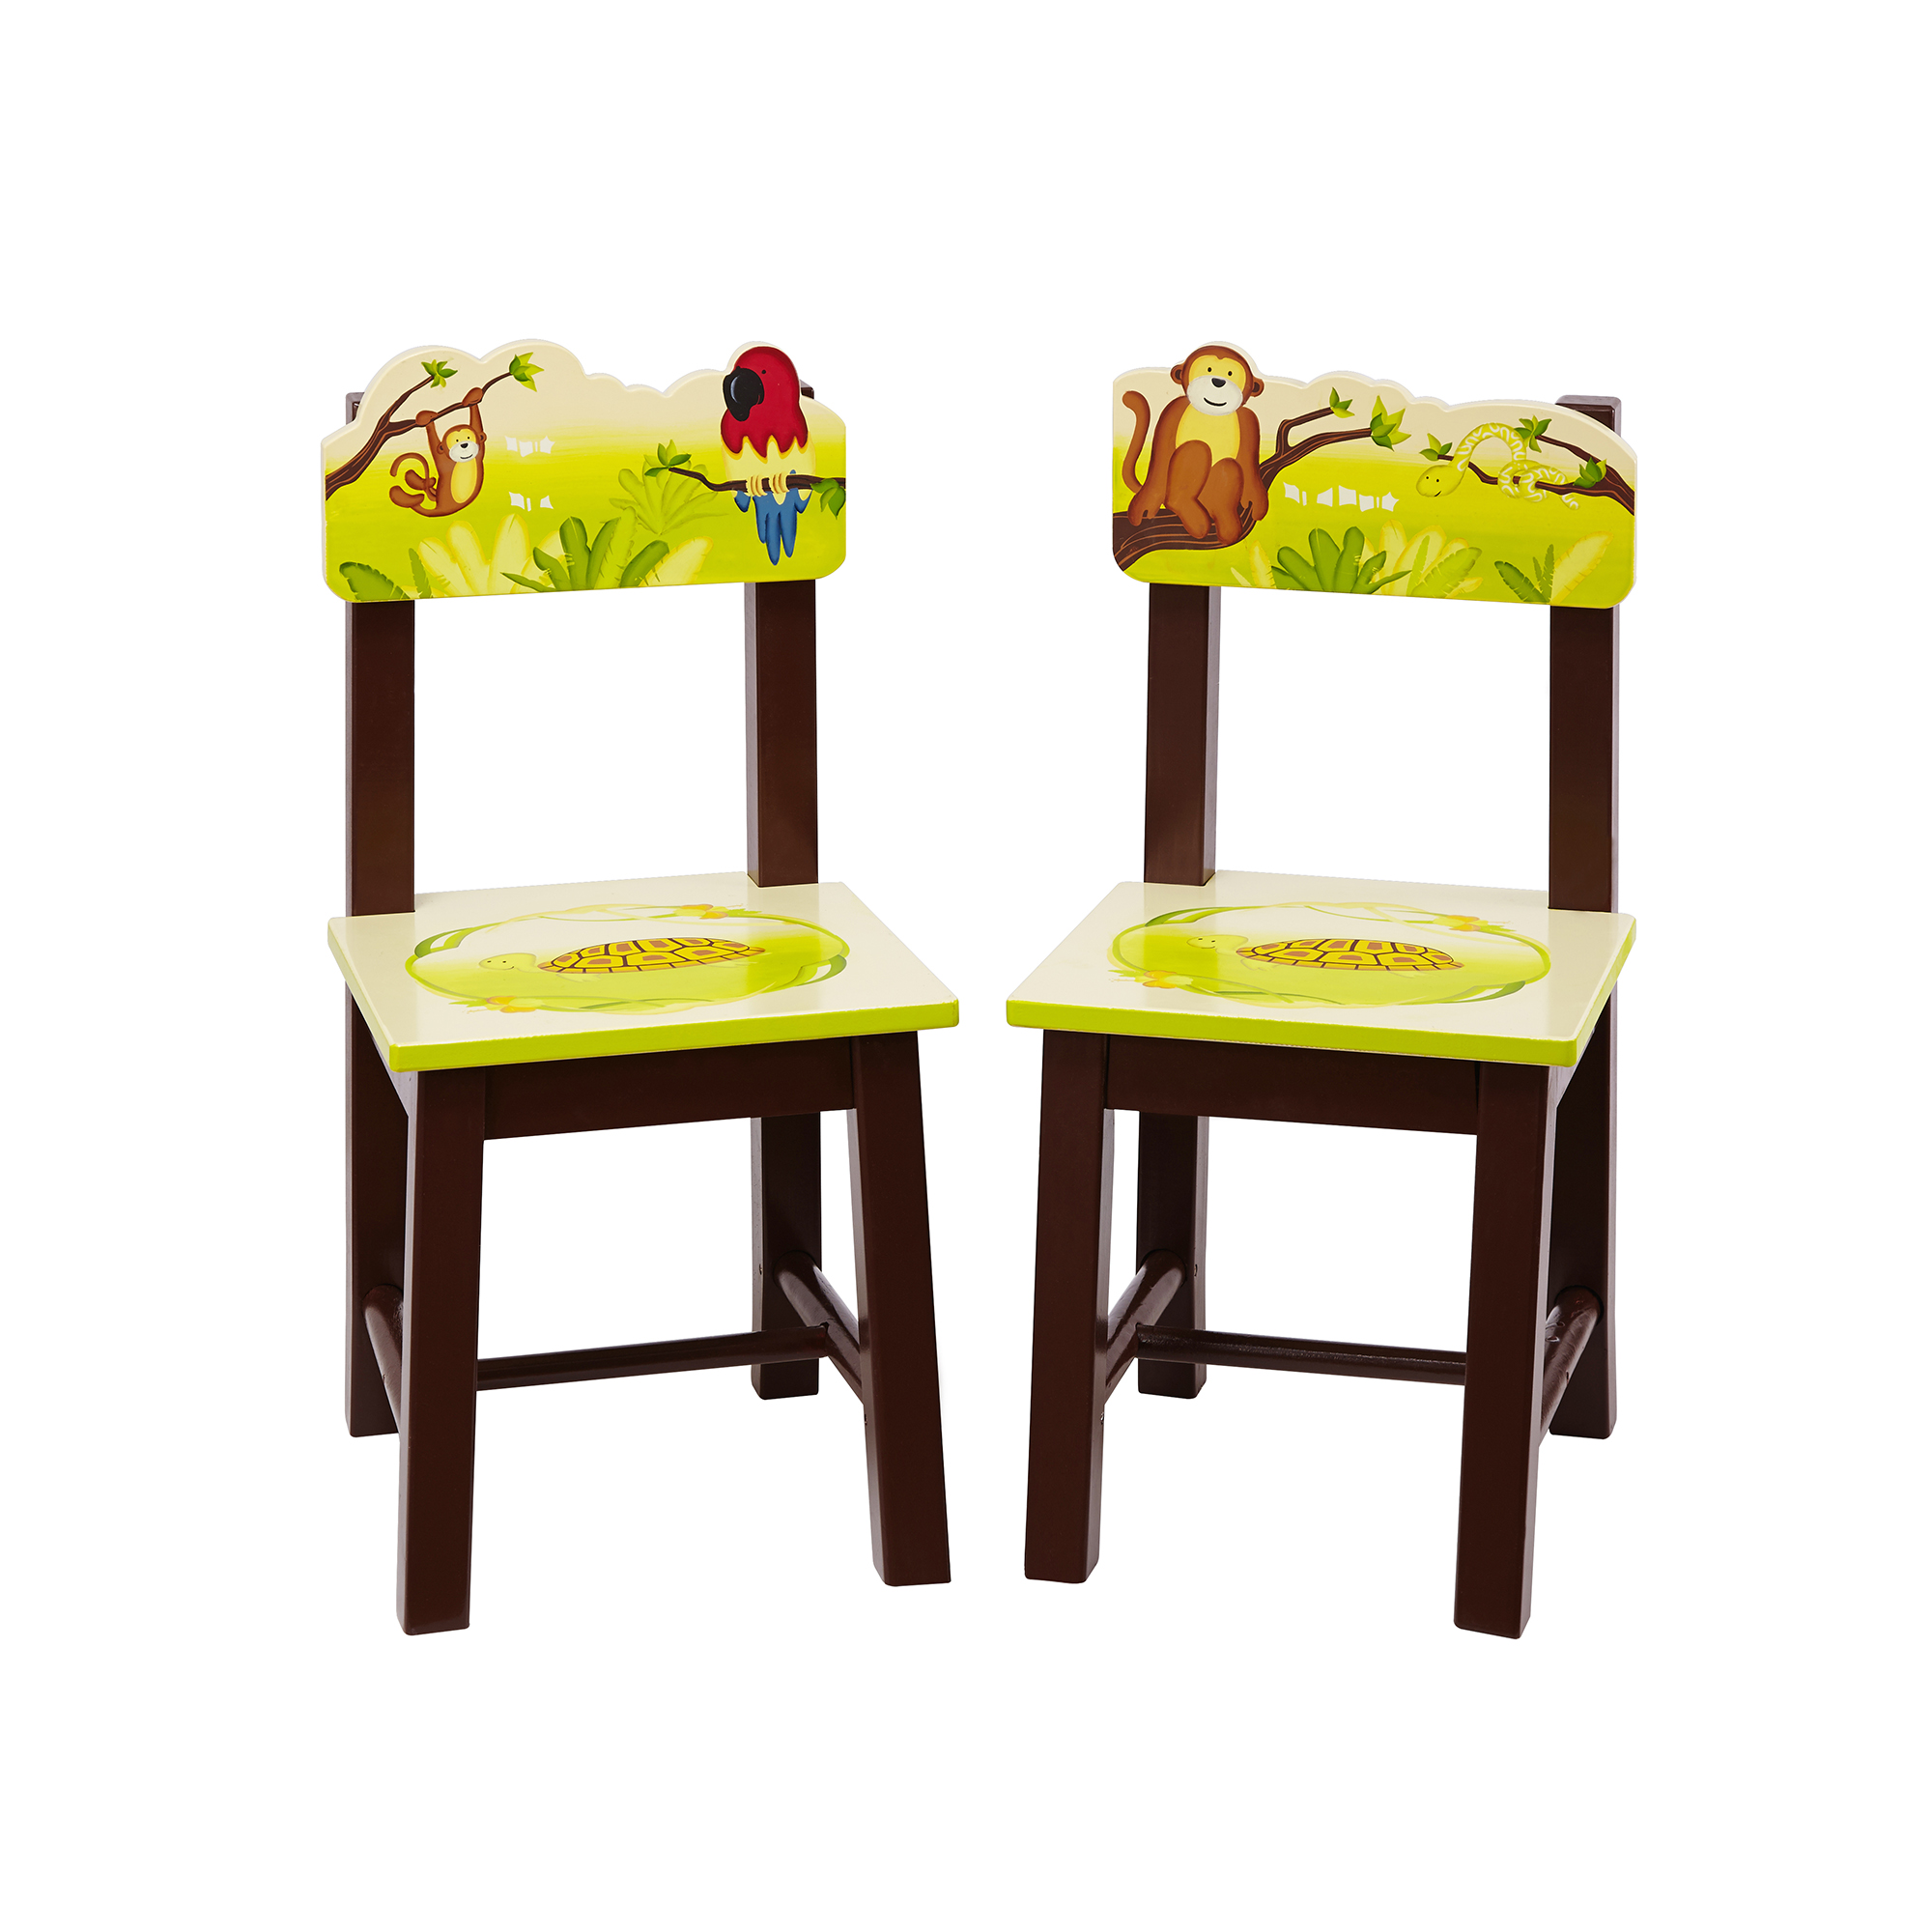 Guidecraft Jungle Party Extra Kids Chairs, Set of 2